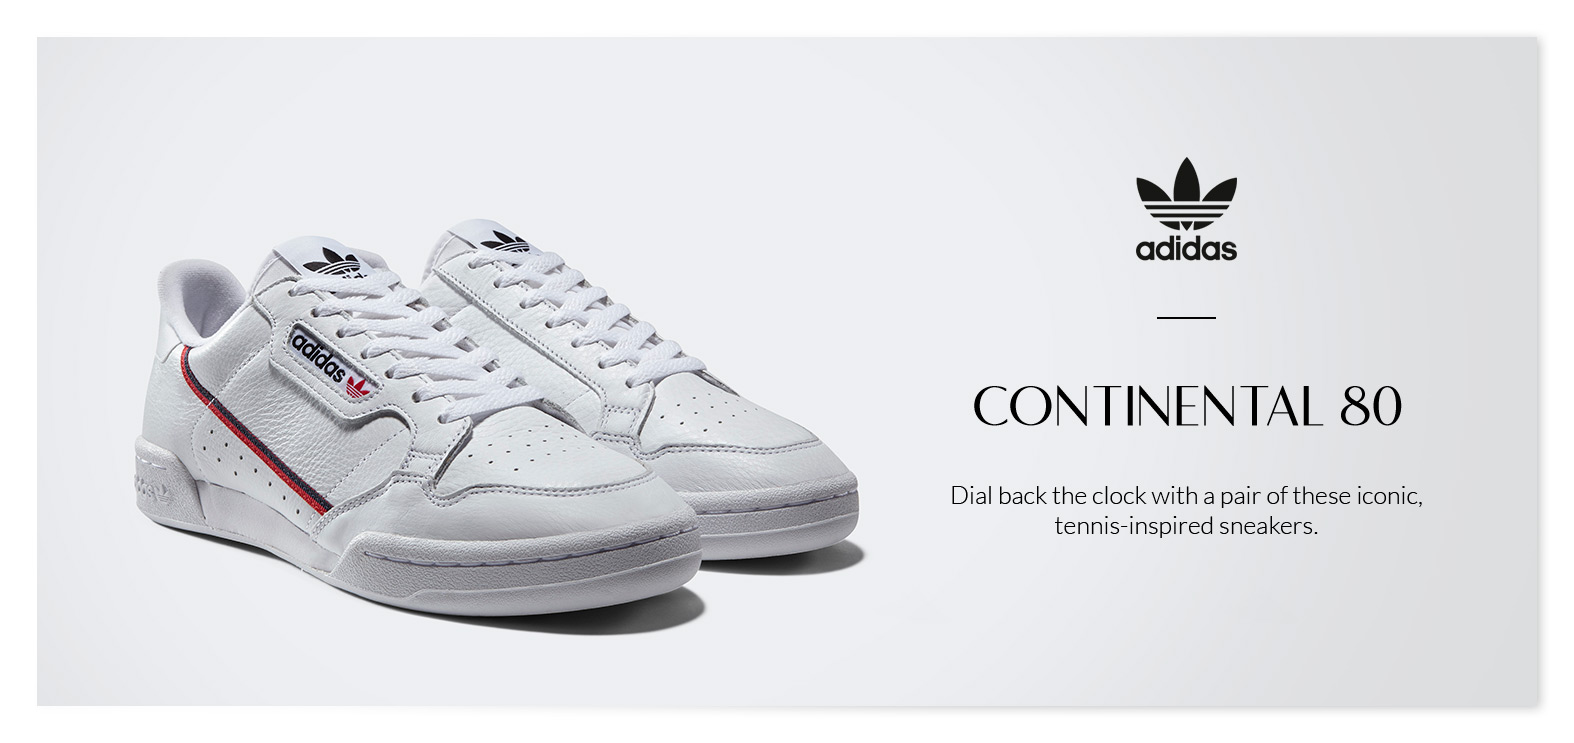 P18-BGL-HOMME-CHAUSSURES_ADIDAS_Continental80.psd